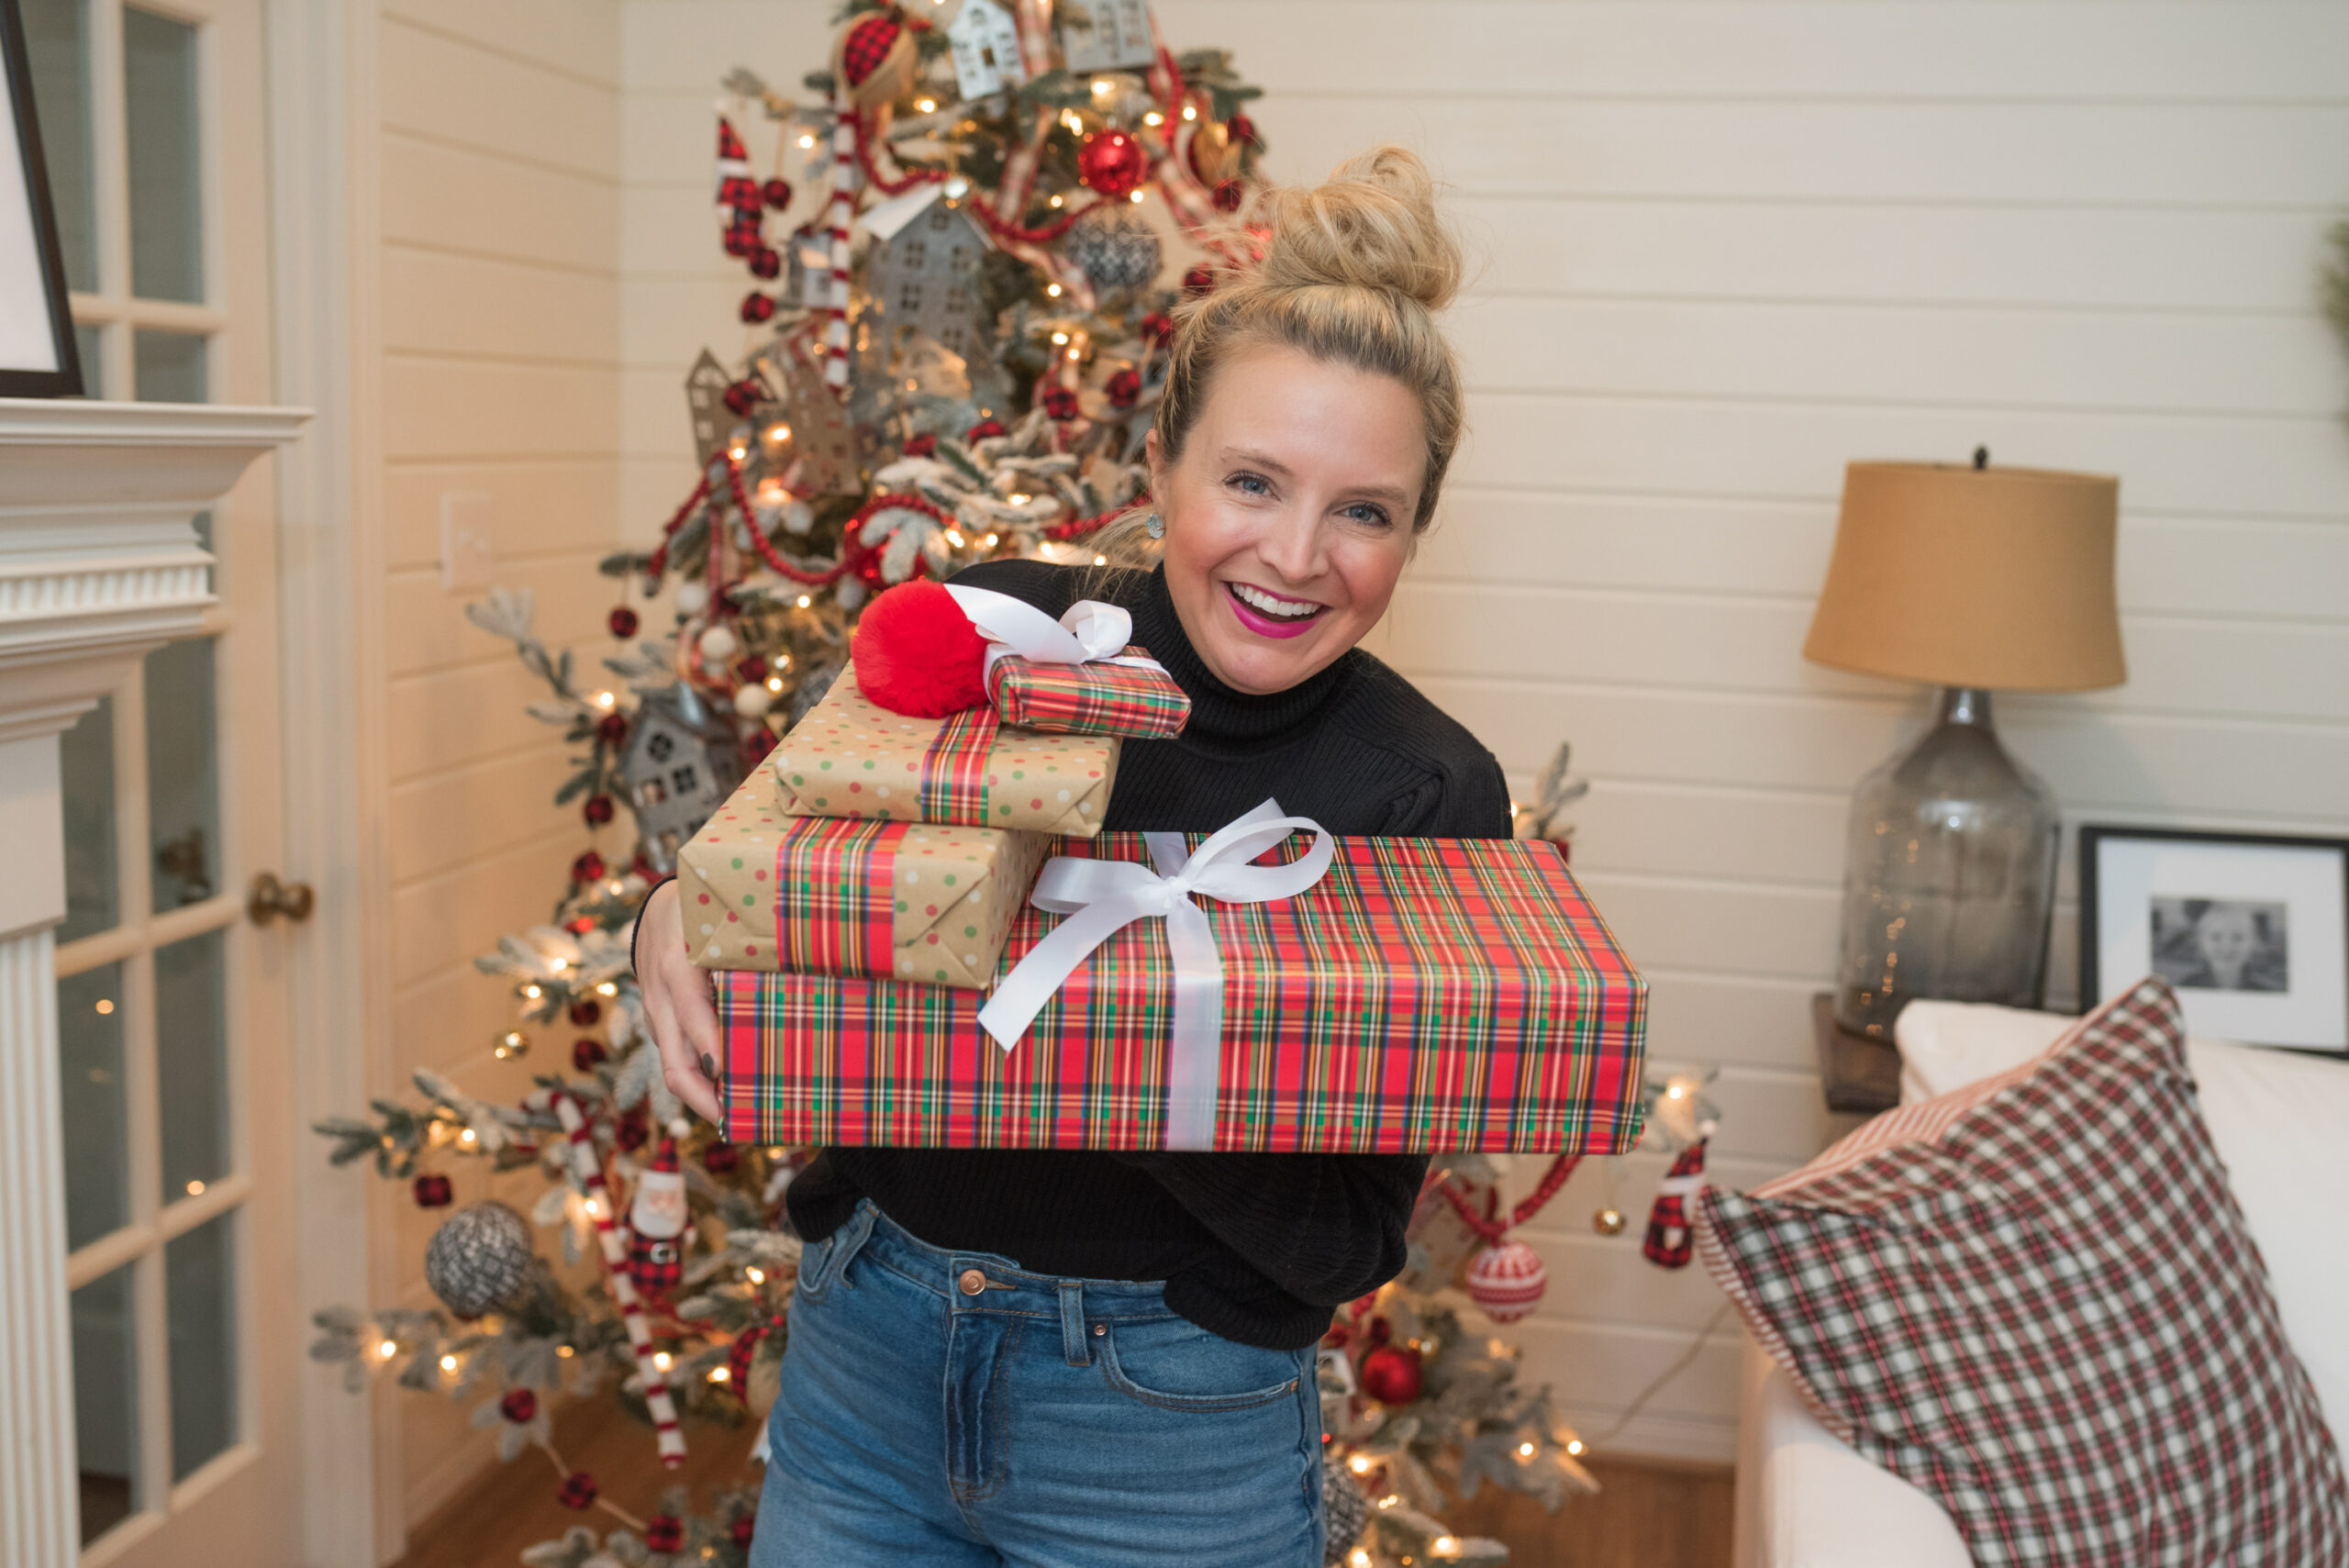 Walmart Gift Ideas by popular Houston life and style blog, Fancy Ashley: image of a woman holding wrapped packages in her arms.